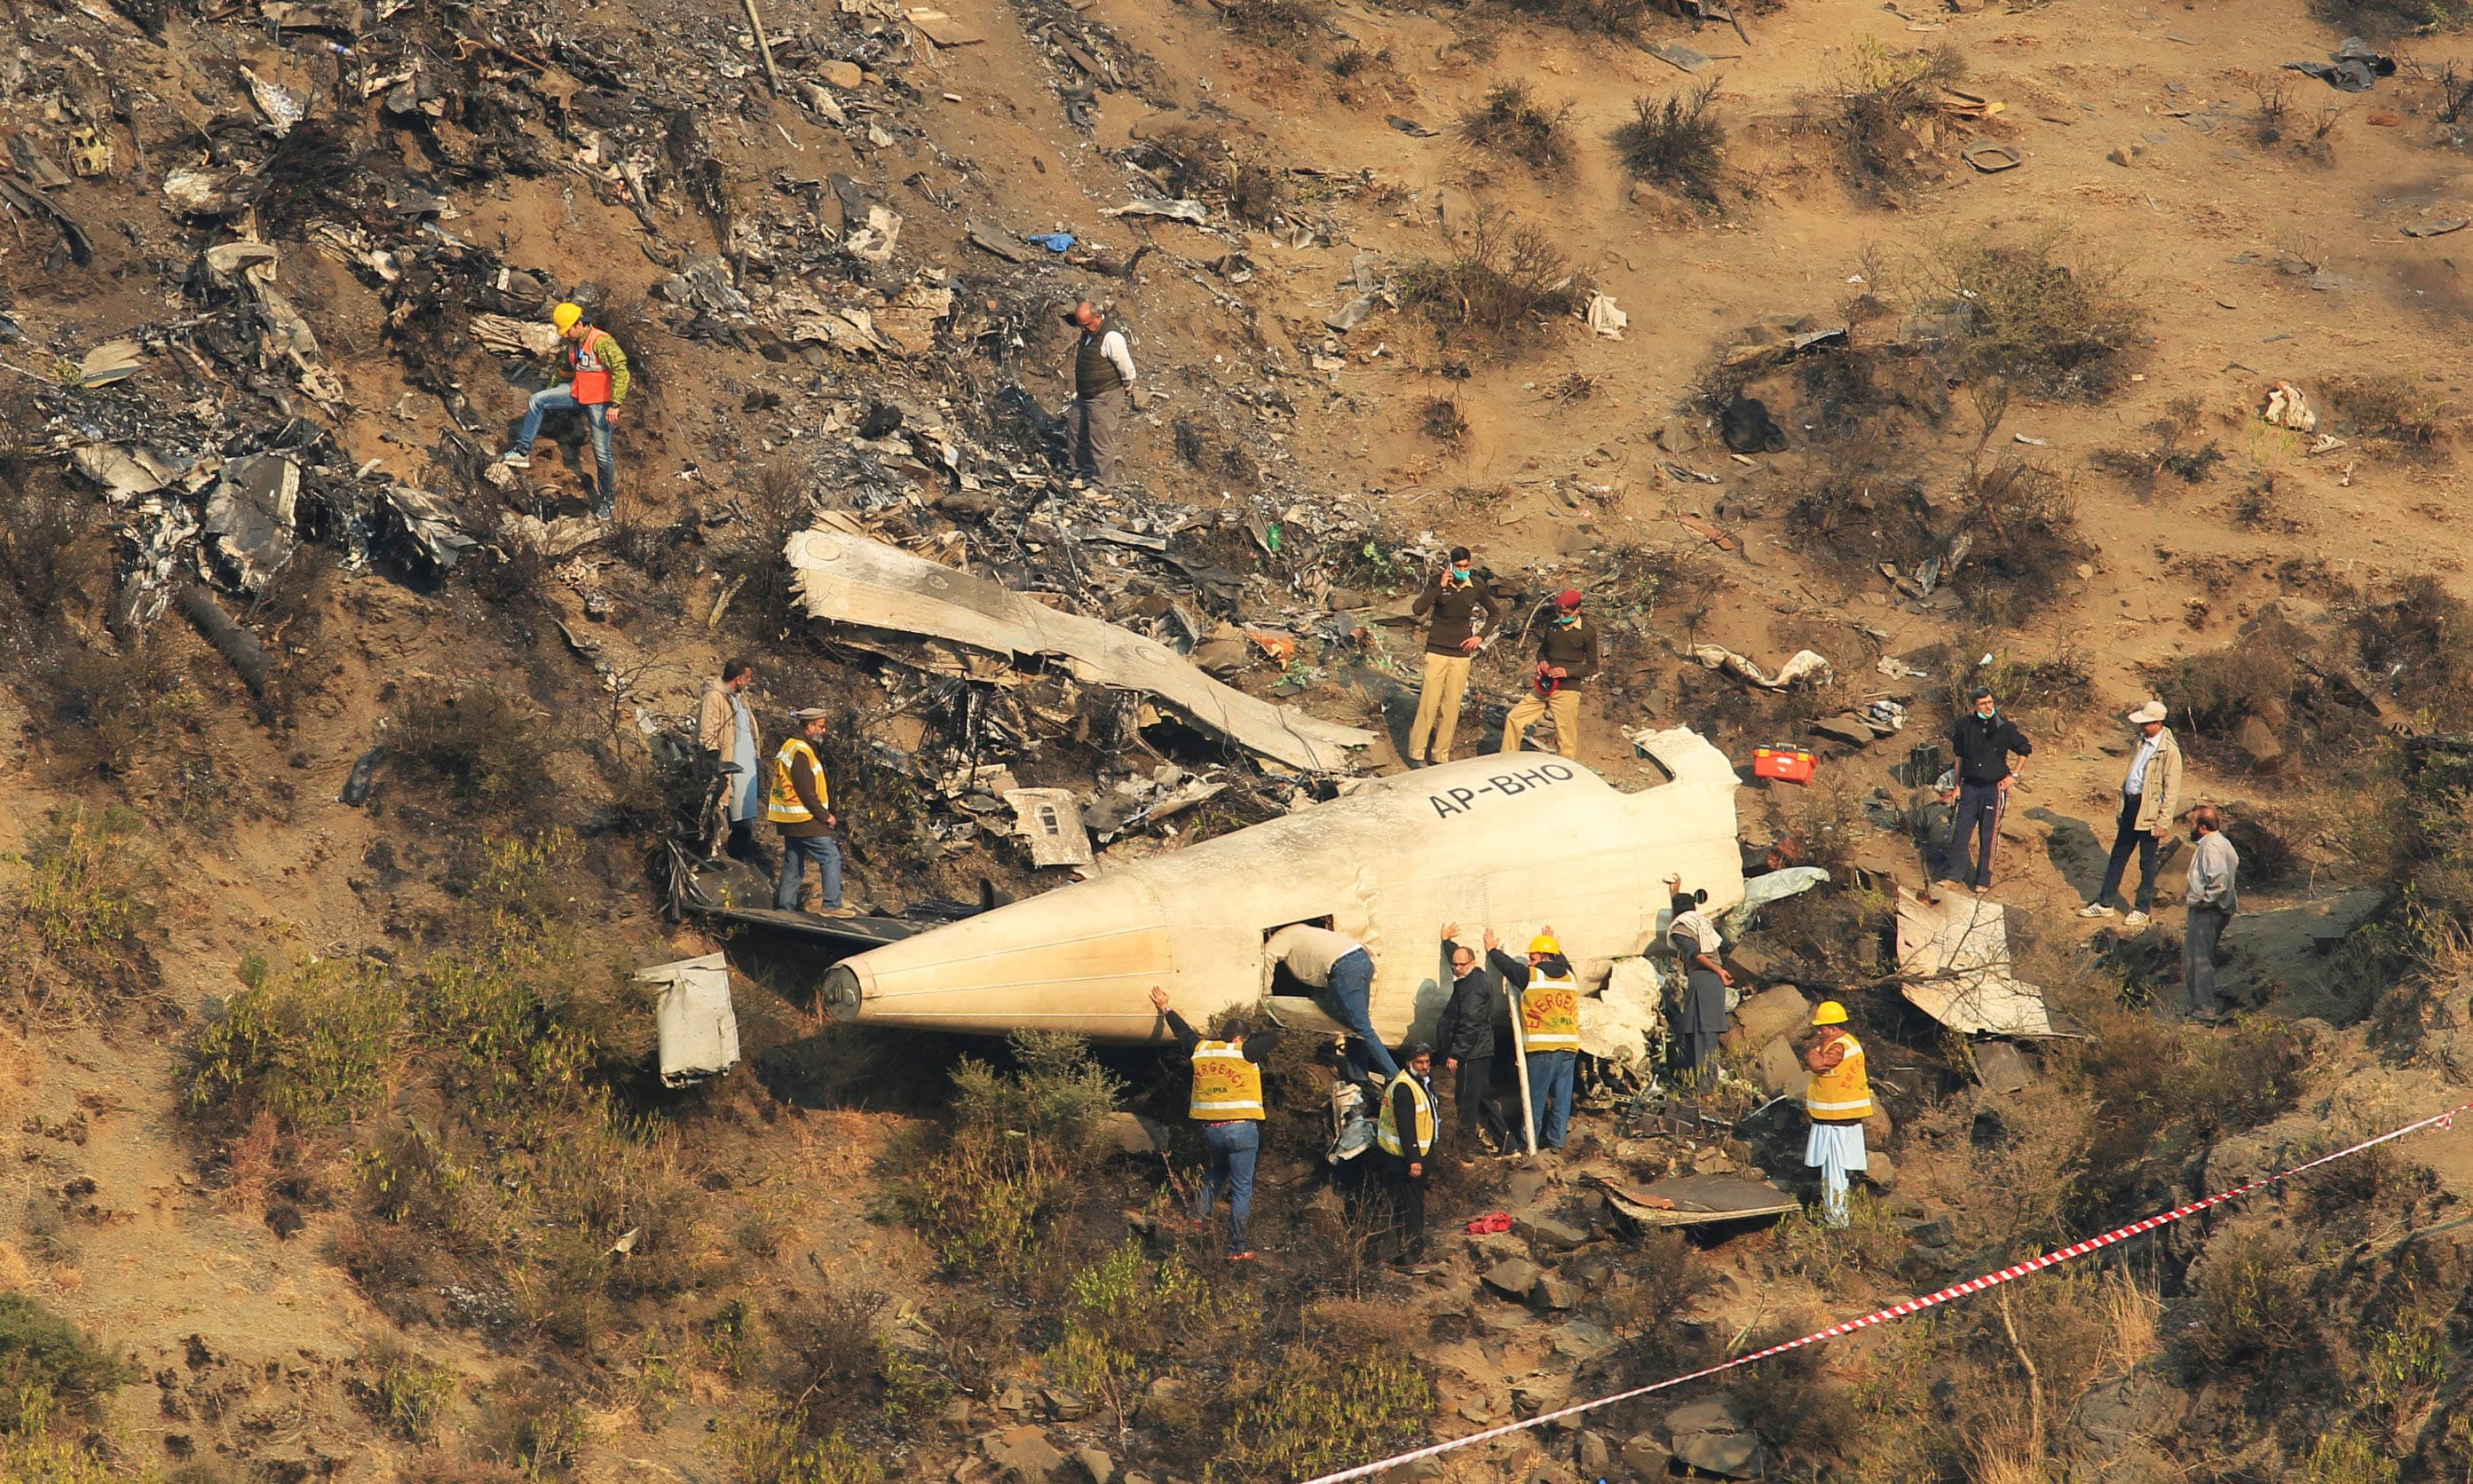 Rescue workers survey the site of a plane crashed a day earlier. — Reuters